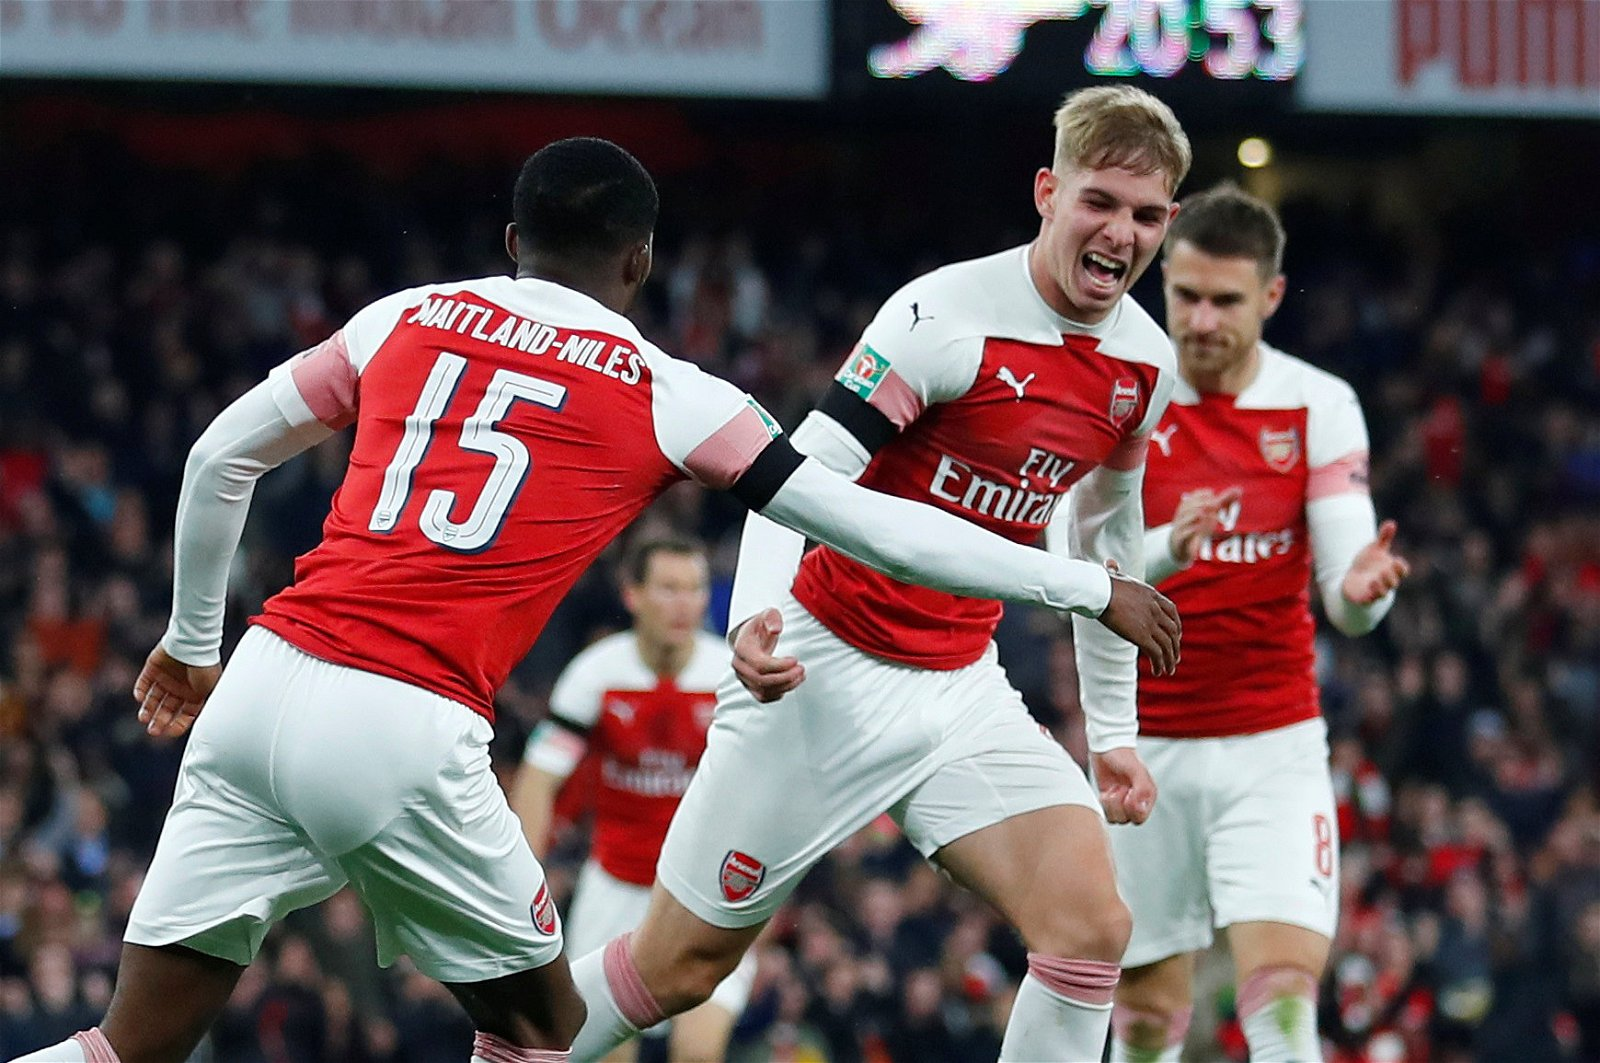 Emile Smith-Rowe celebrates first Emirates goal (Arsenal v Blackpool)